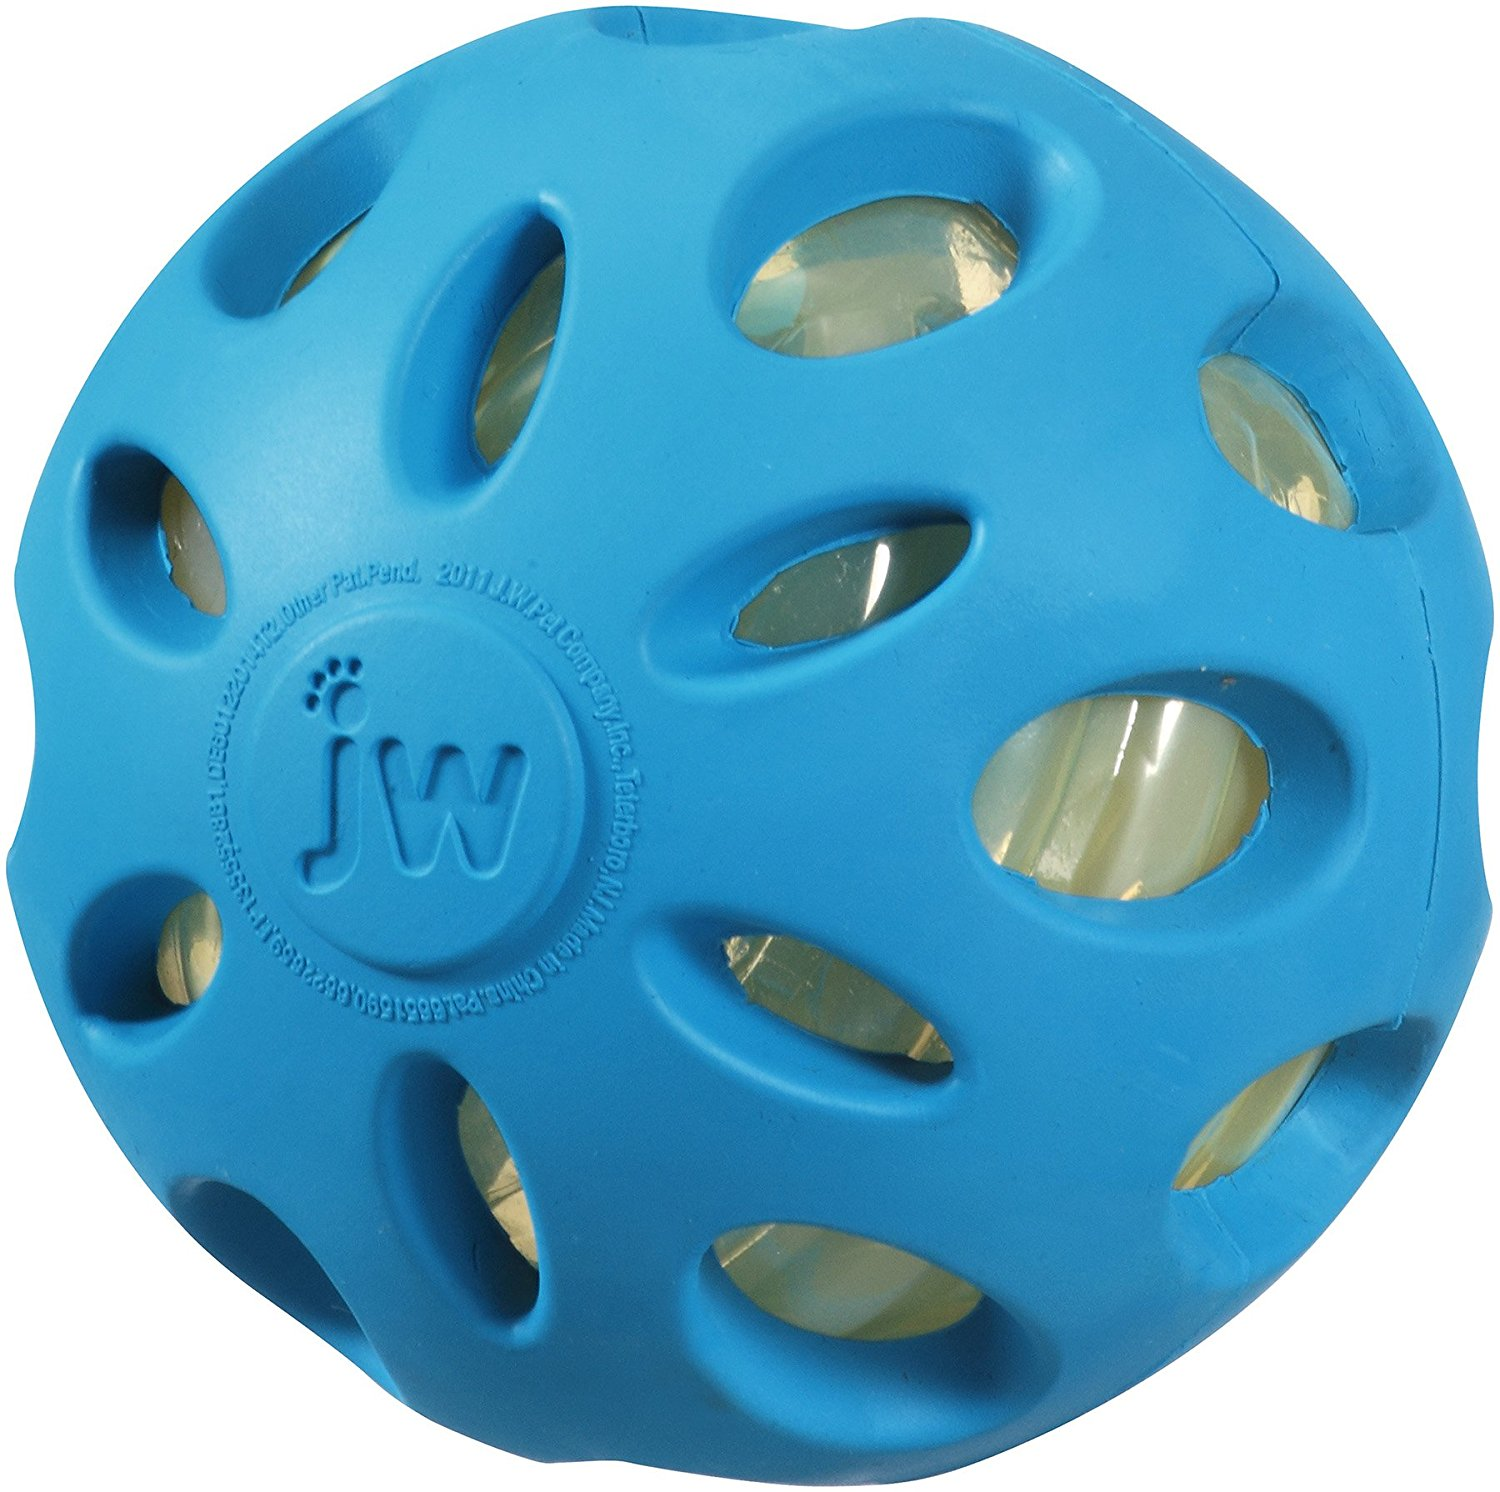 Pet Supplies Jw Pet Crackle Heads Ball Rubber Durable Fetch Chew Dog